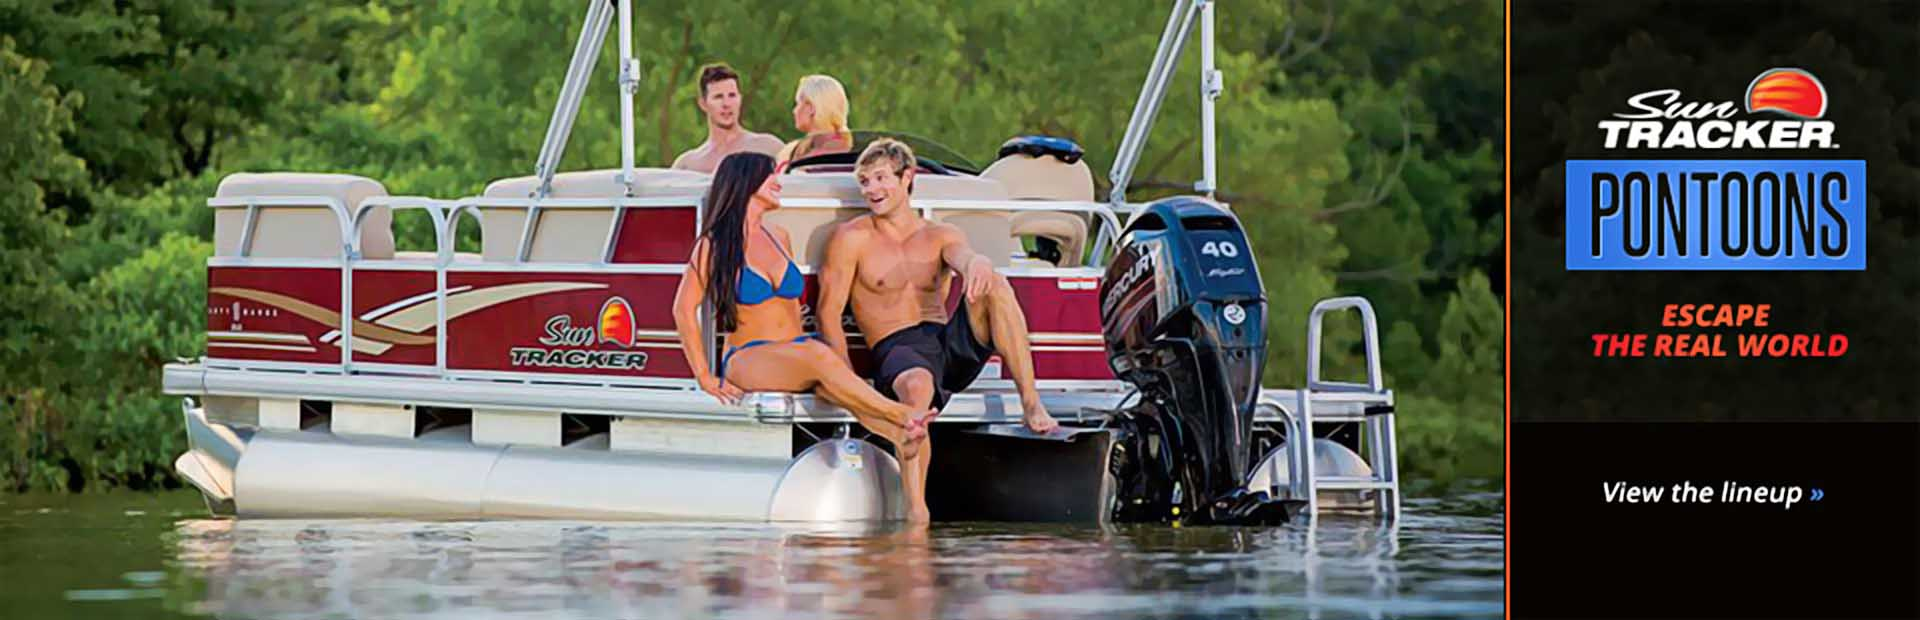 Sun Tracker Pontoons: Click here to view the models.